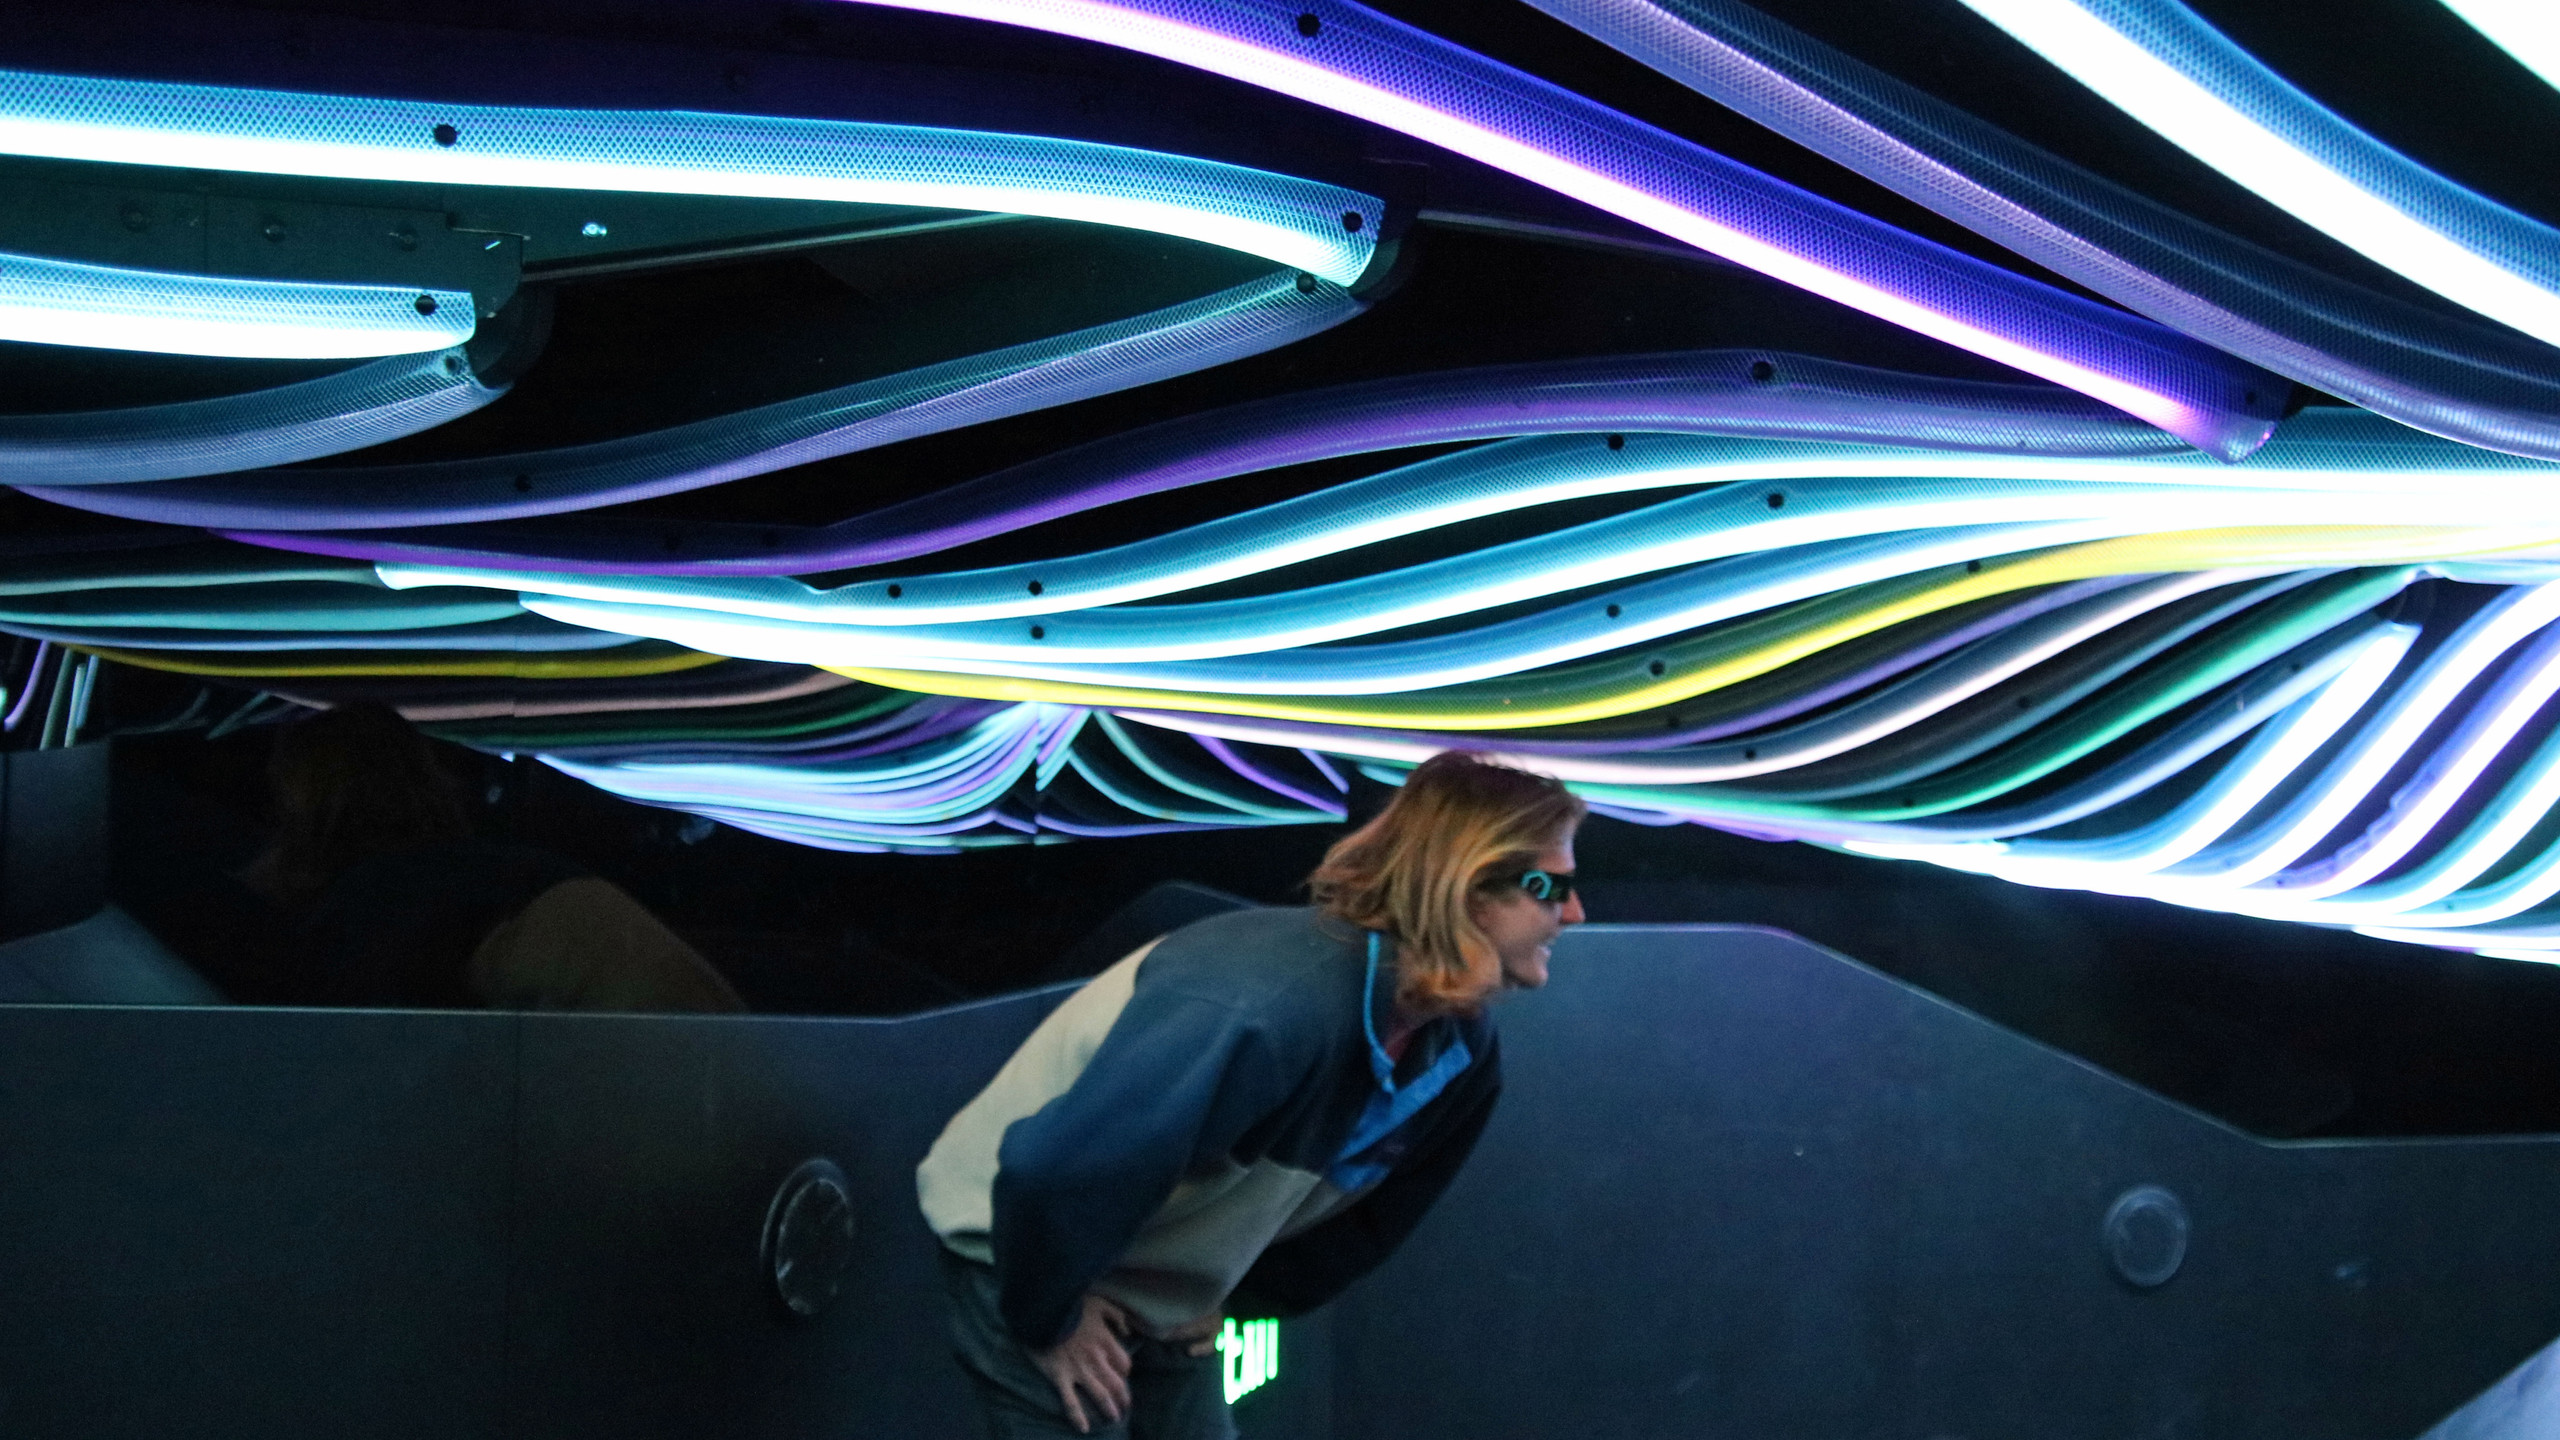 Man crouched in a room with a low ceiling covered in lights